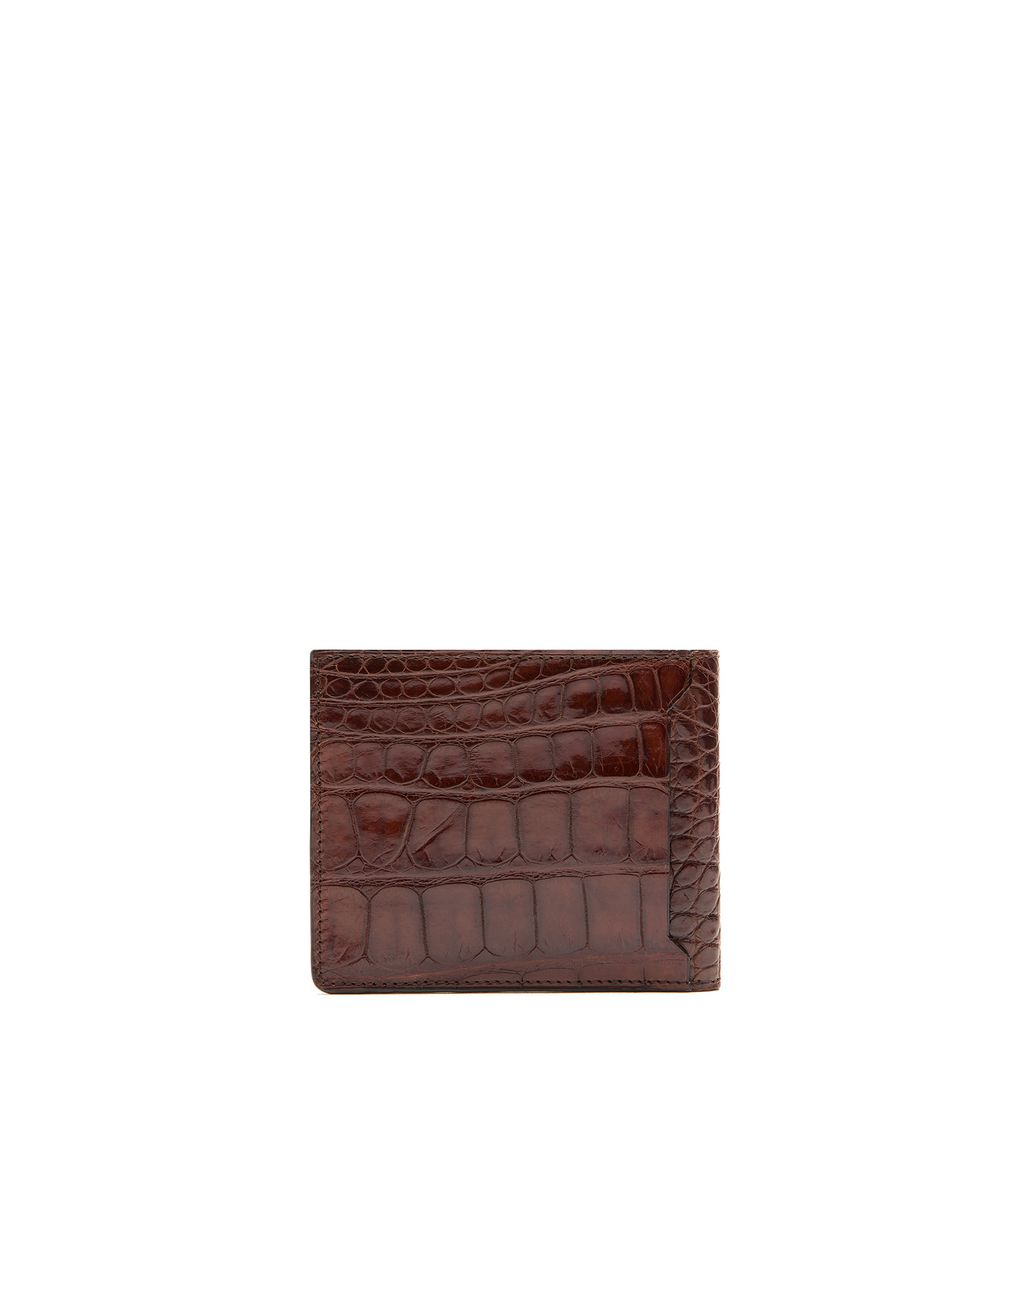 BRIONI Portafogli Slim in Alligatore Color Cognac Pelletteria [*** pickupInStoreShippingNotGuaranteed_info ***] r